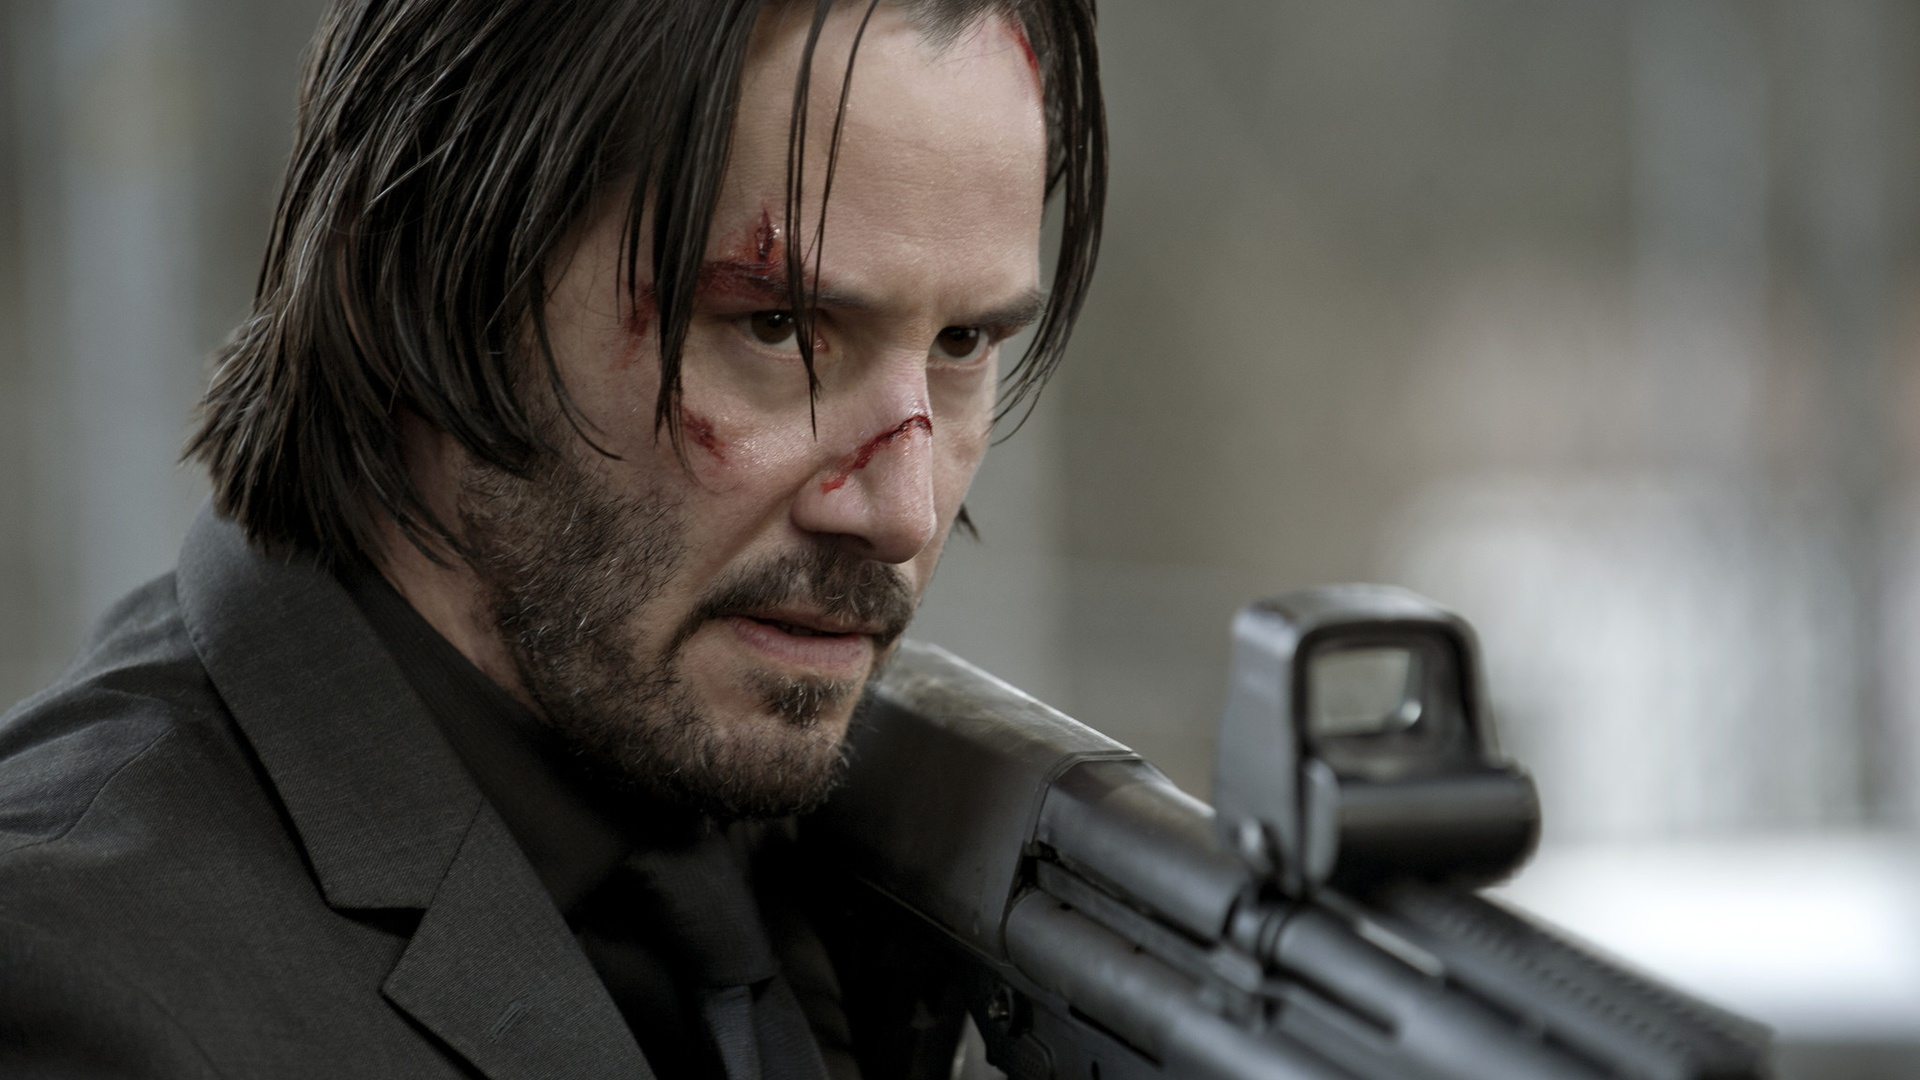 Keanu Reeves Runs Secret Cancer Foundation To Fund Childrens Hospitals john wick keanu reeves